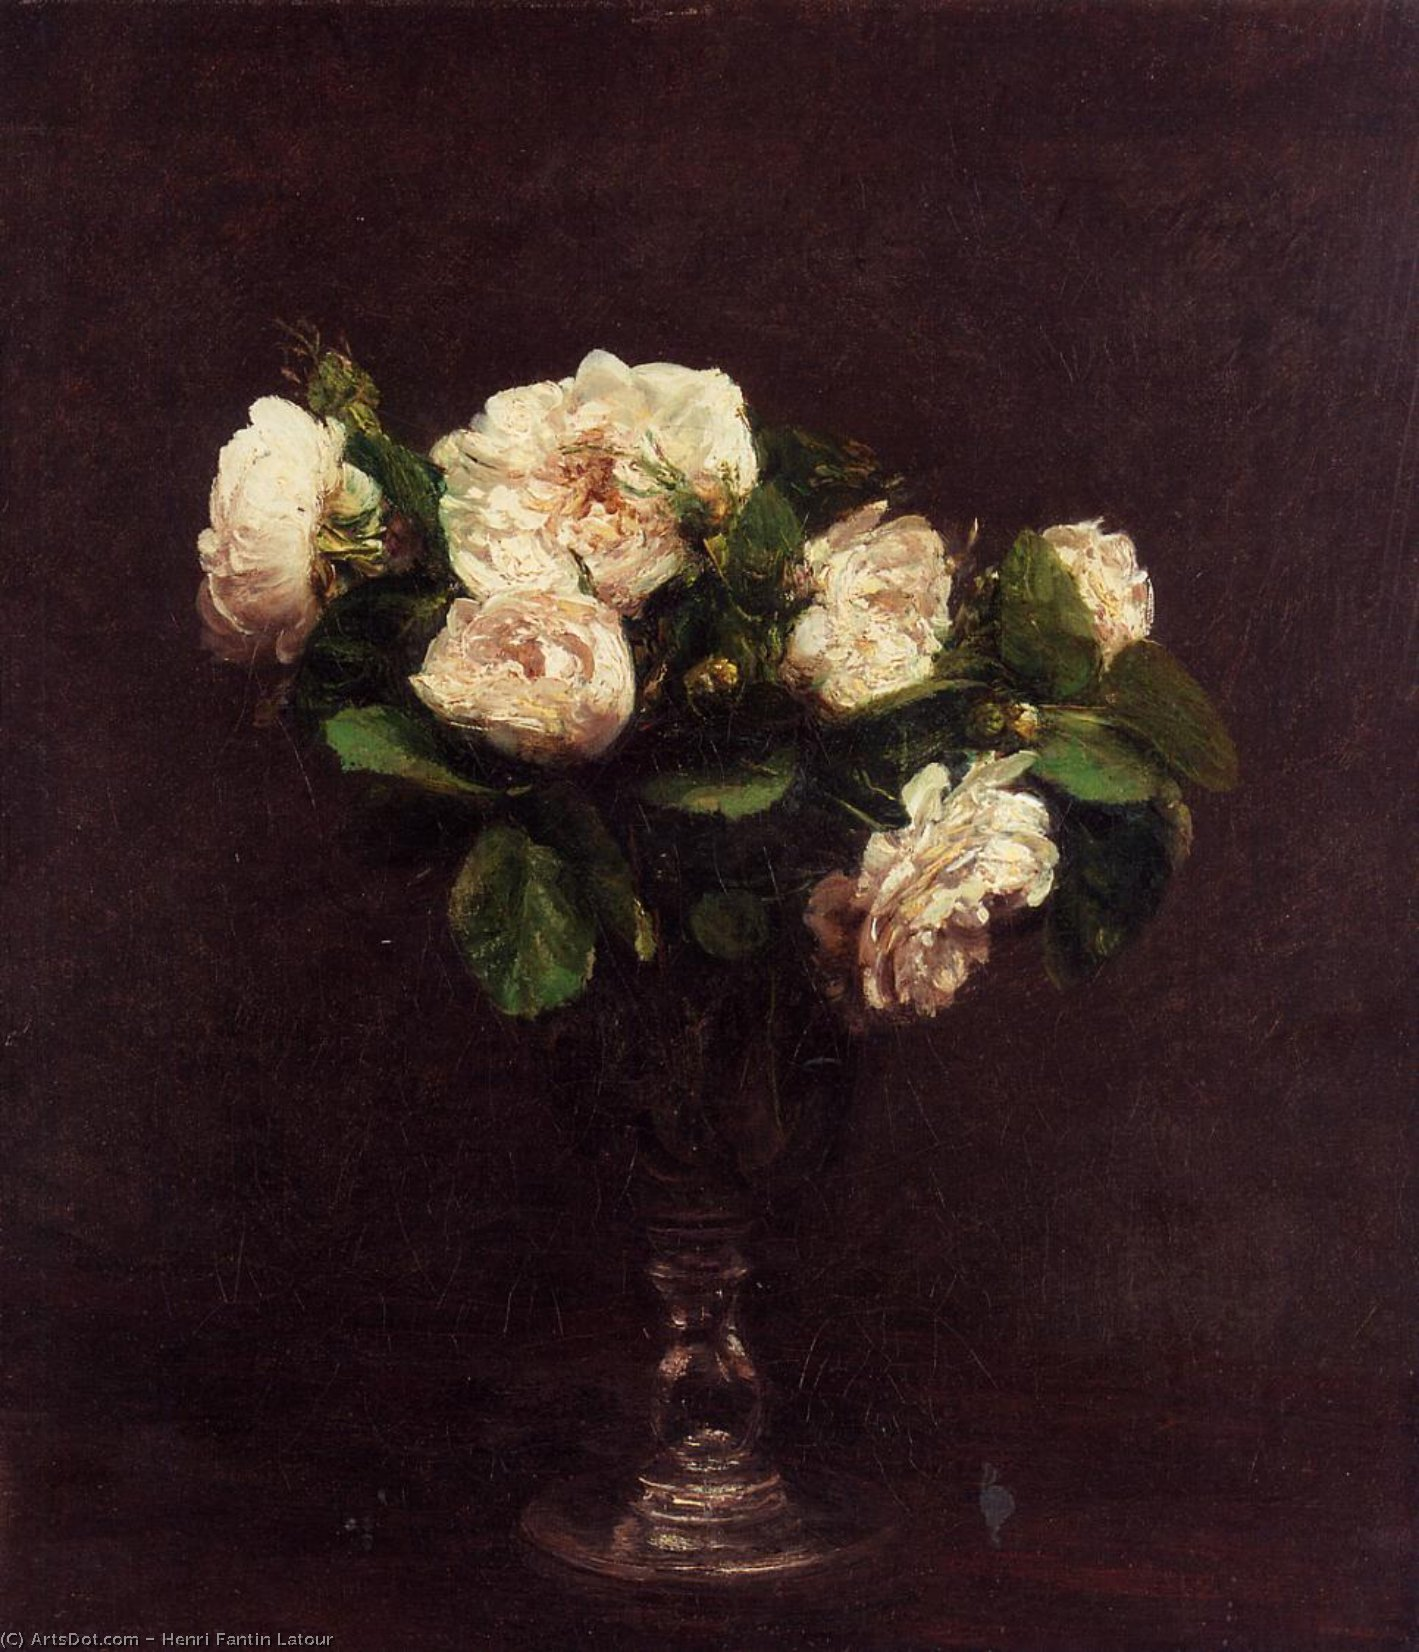 White Roses, Oil by Henri Fantin Latour (1836-1904, France)